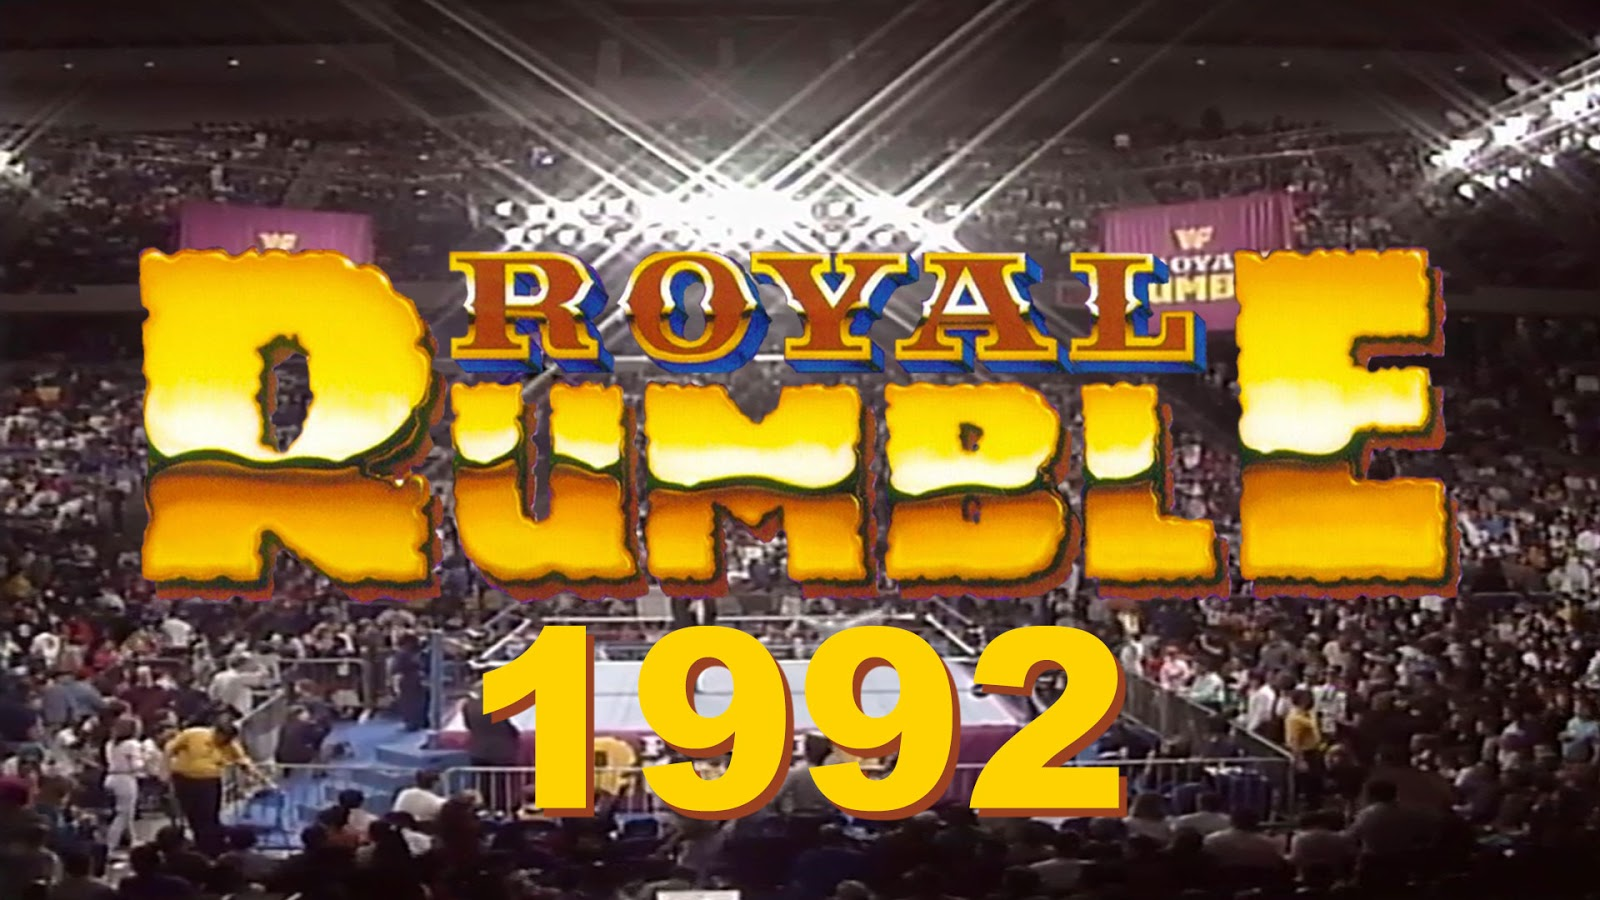 WWE Royal Rumble 1992 Match commentary Podcast